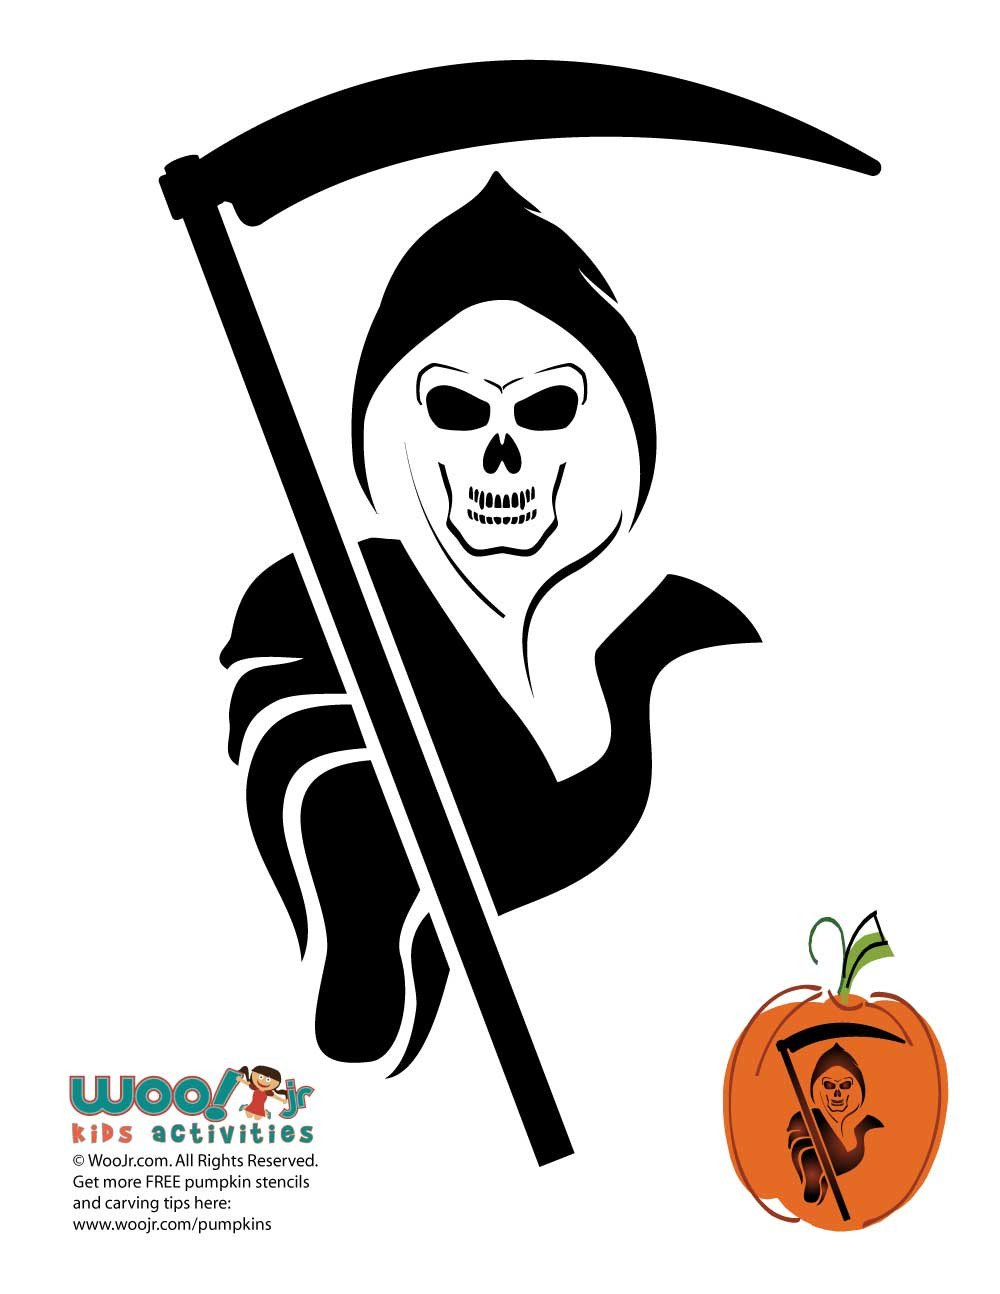 Grim Reaper Pumpkin Template to Carve